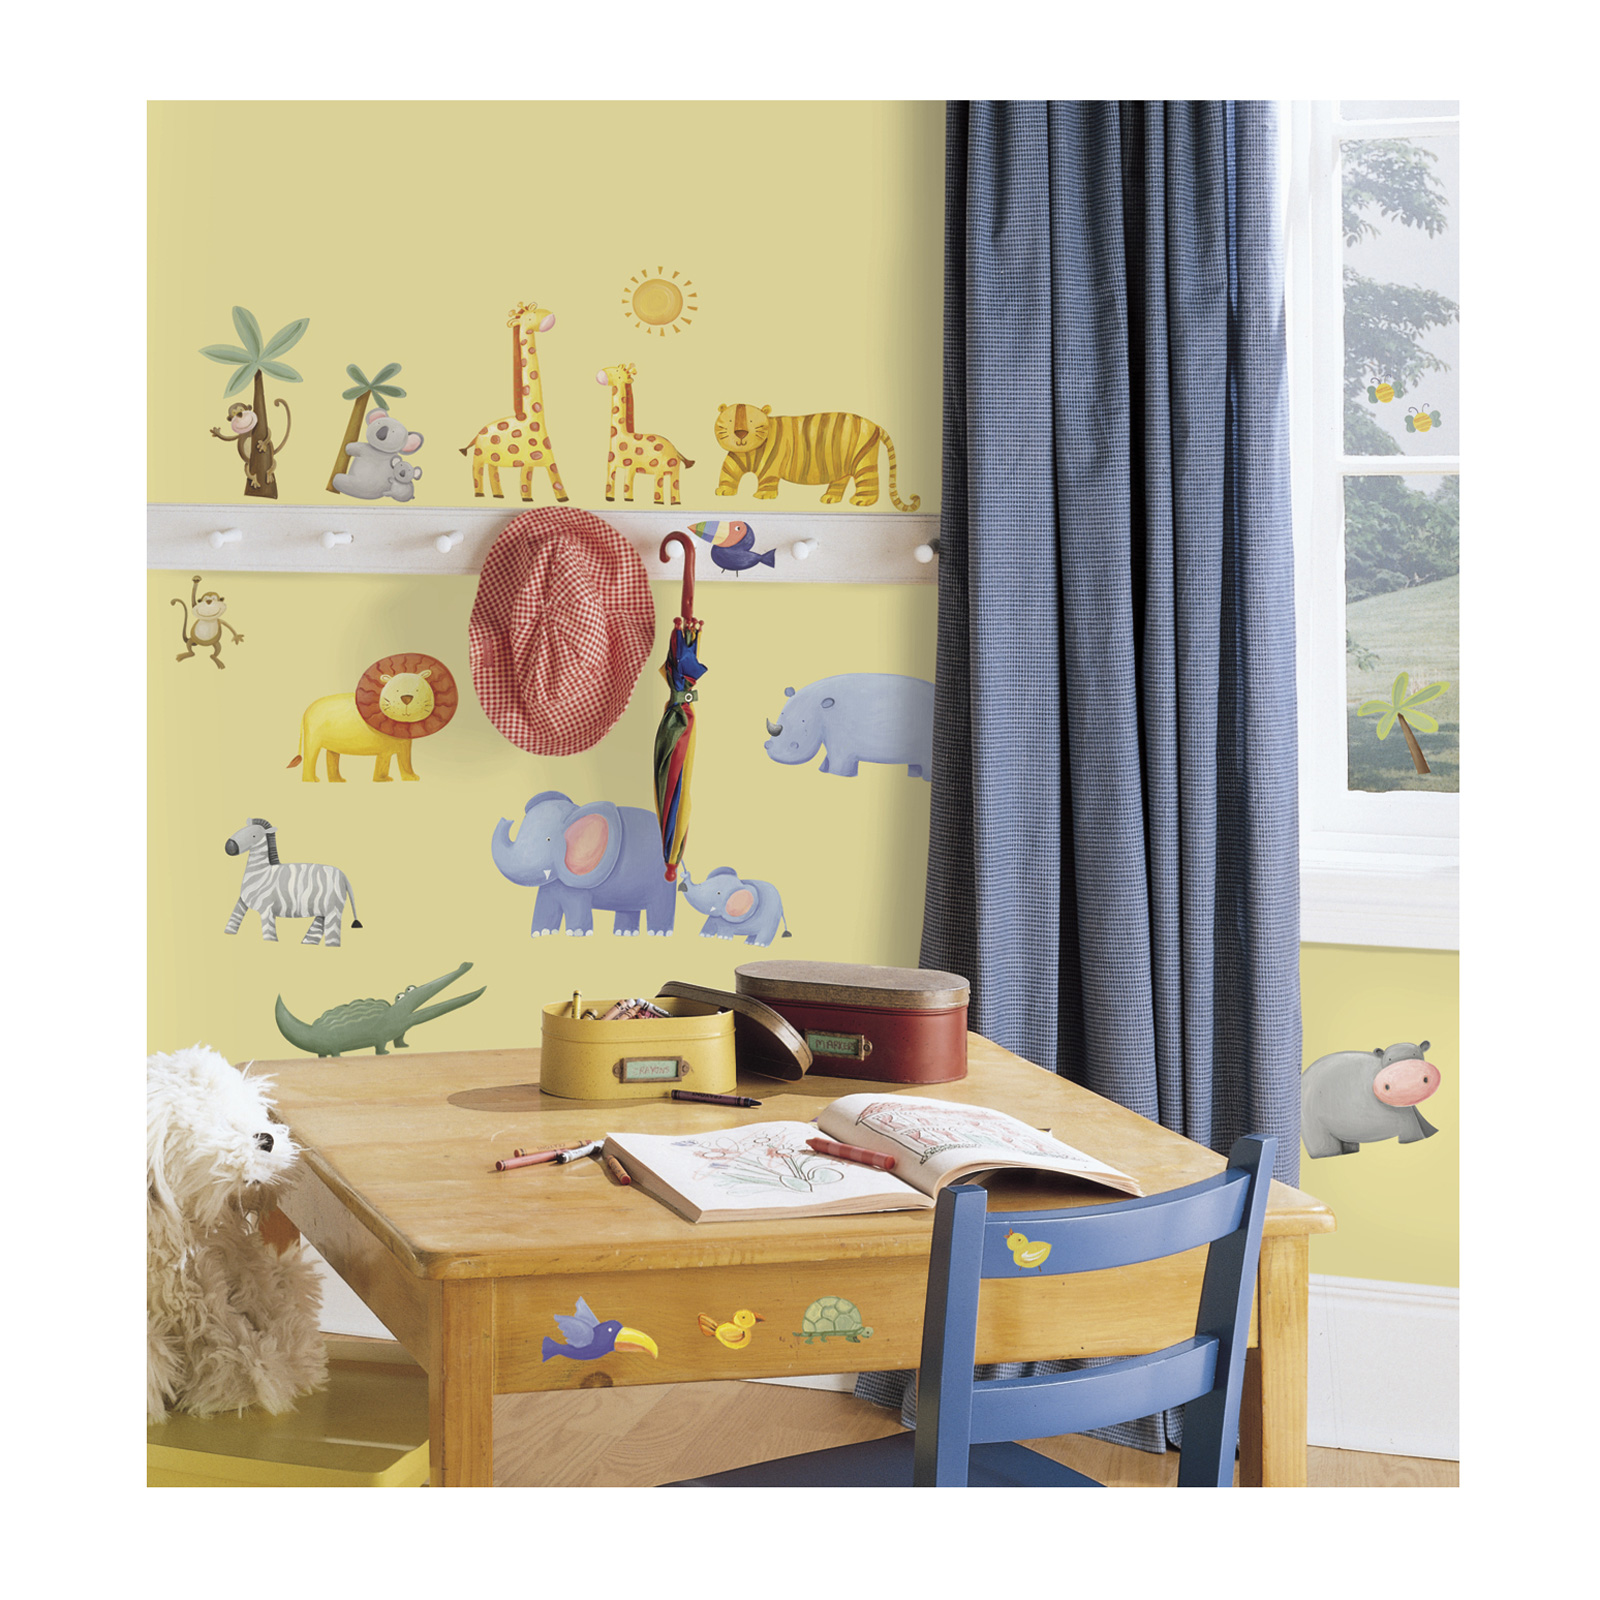 Jungle Adventure Wall Decals by Stardom Specialty in USA